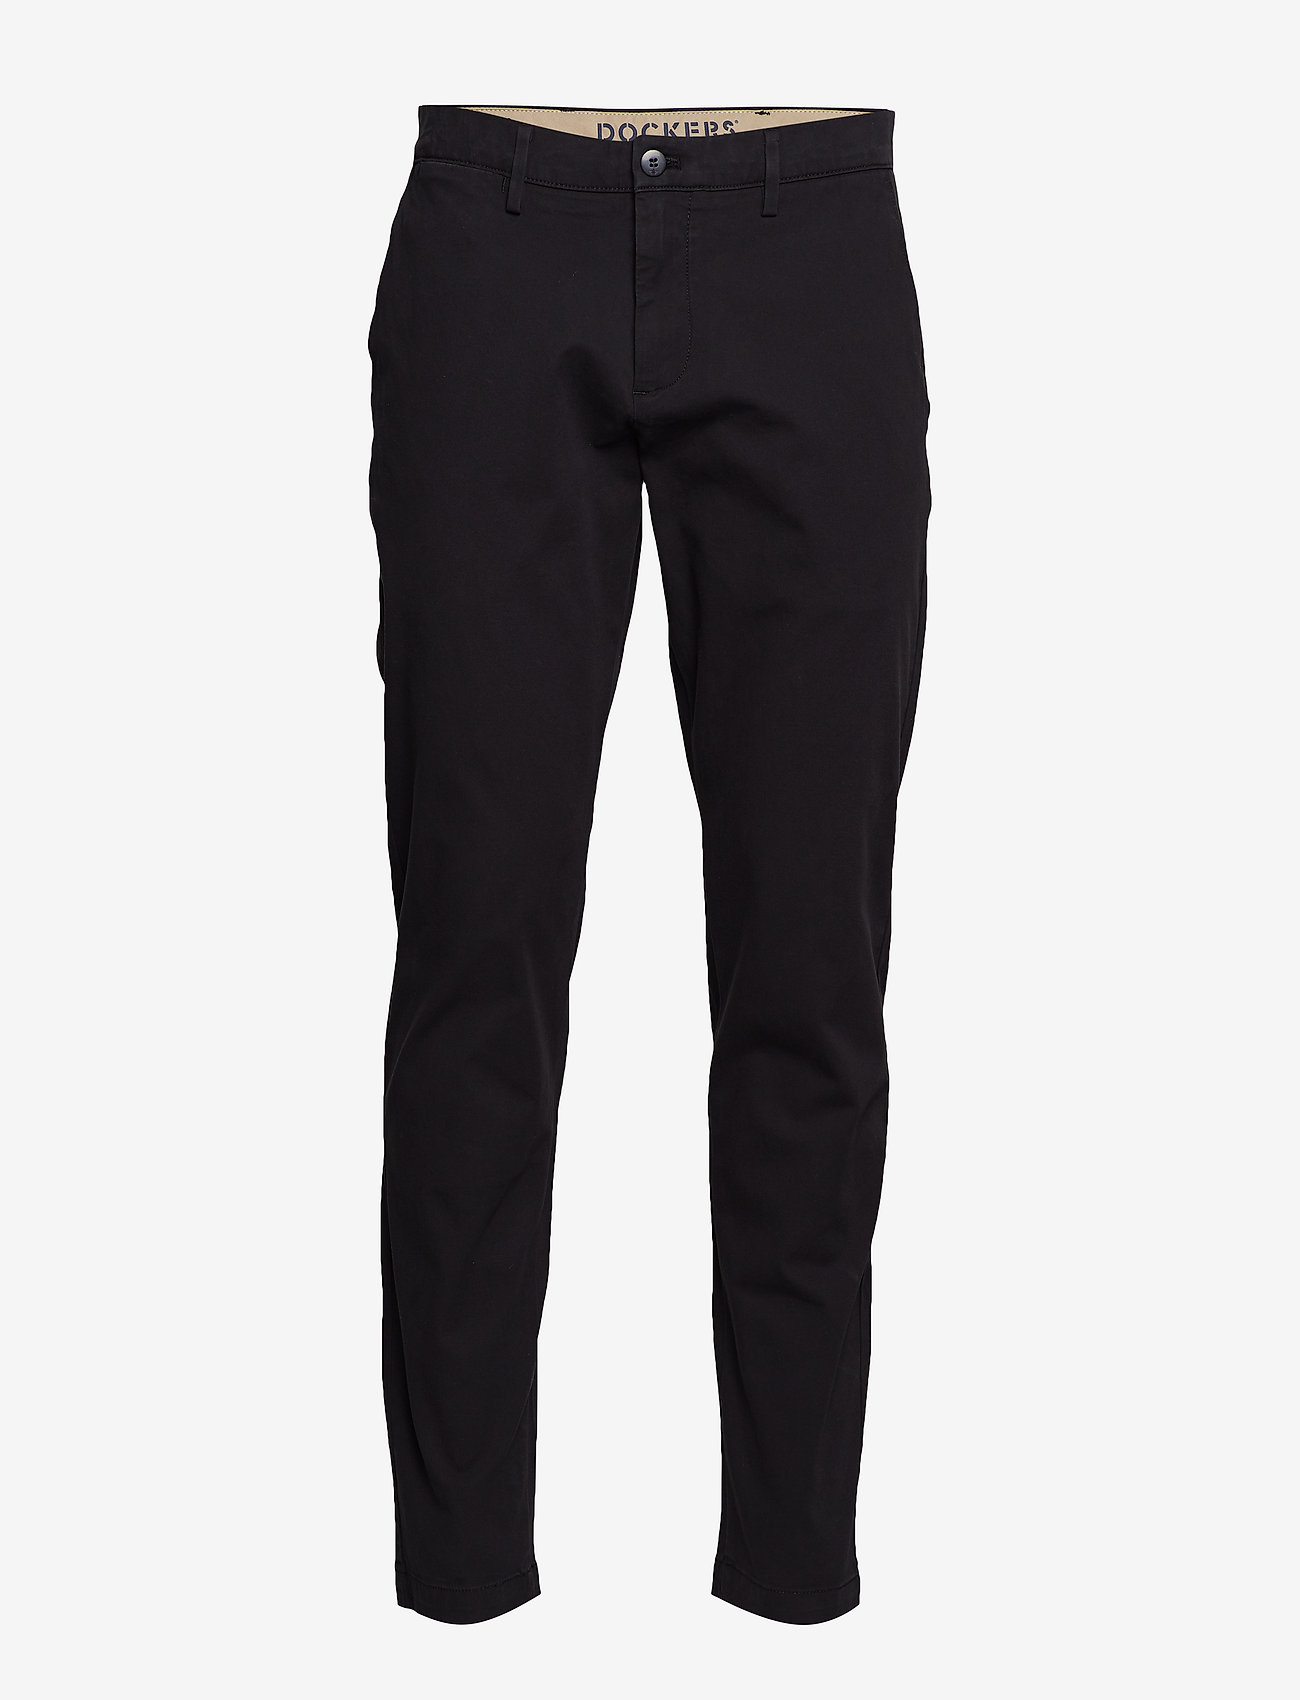 Dockers - SMART 360 CHINO TAPER BLACK - chinos - blacks - 0